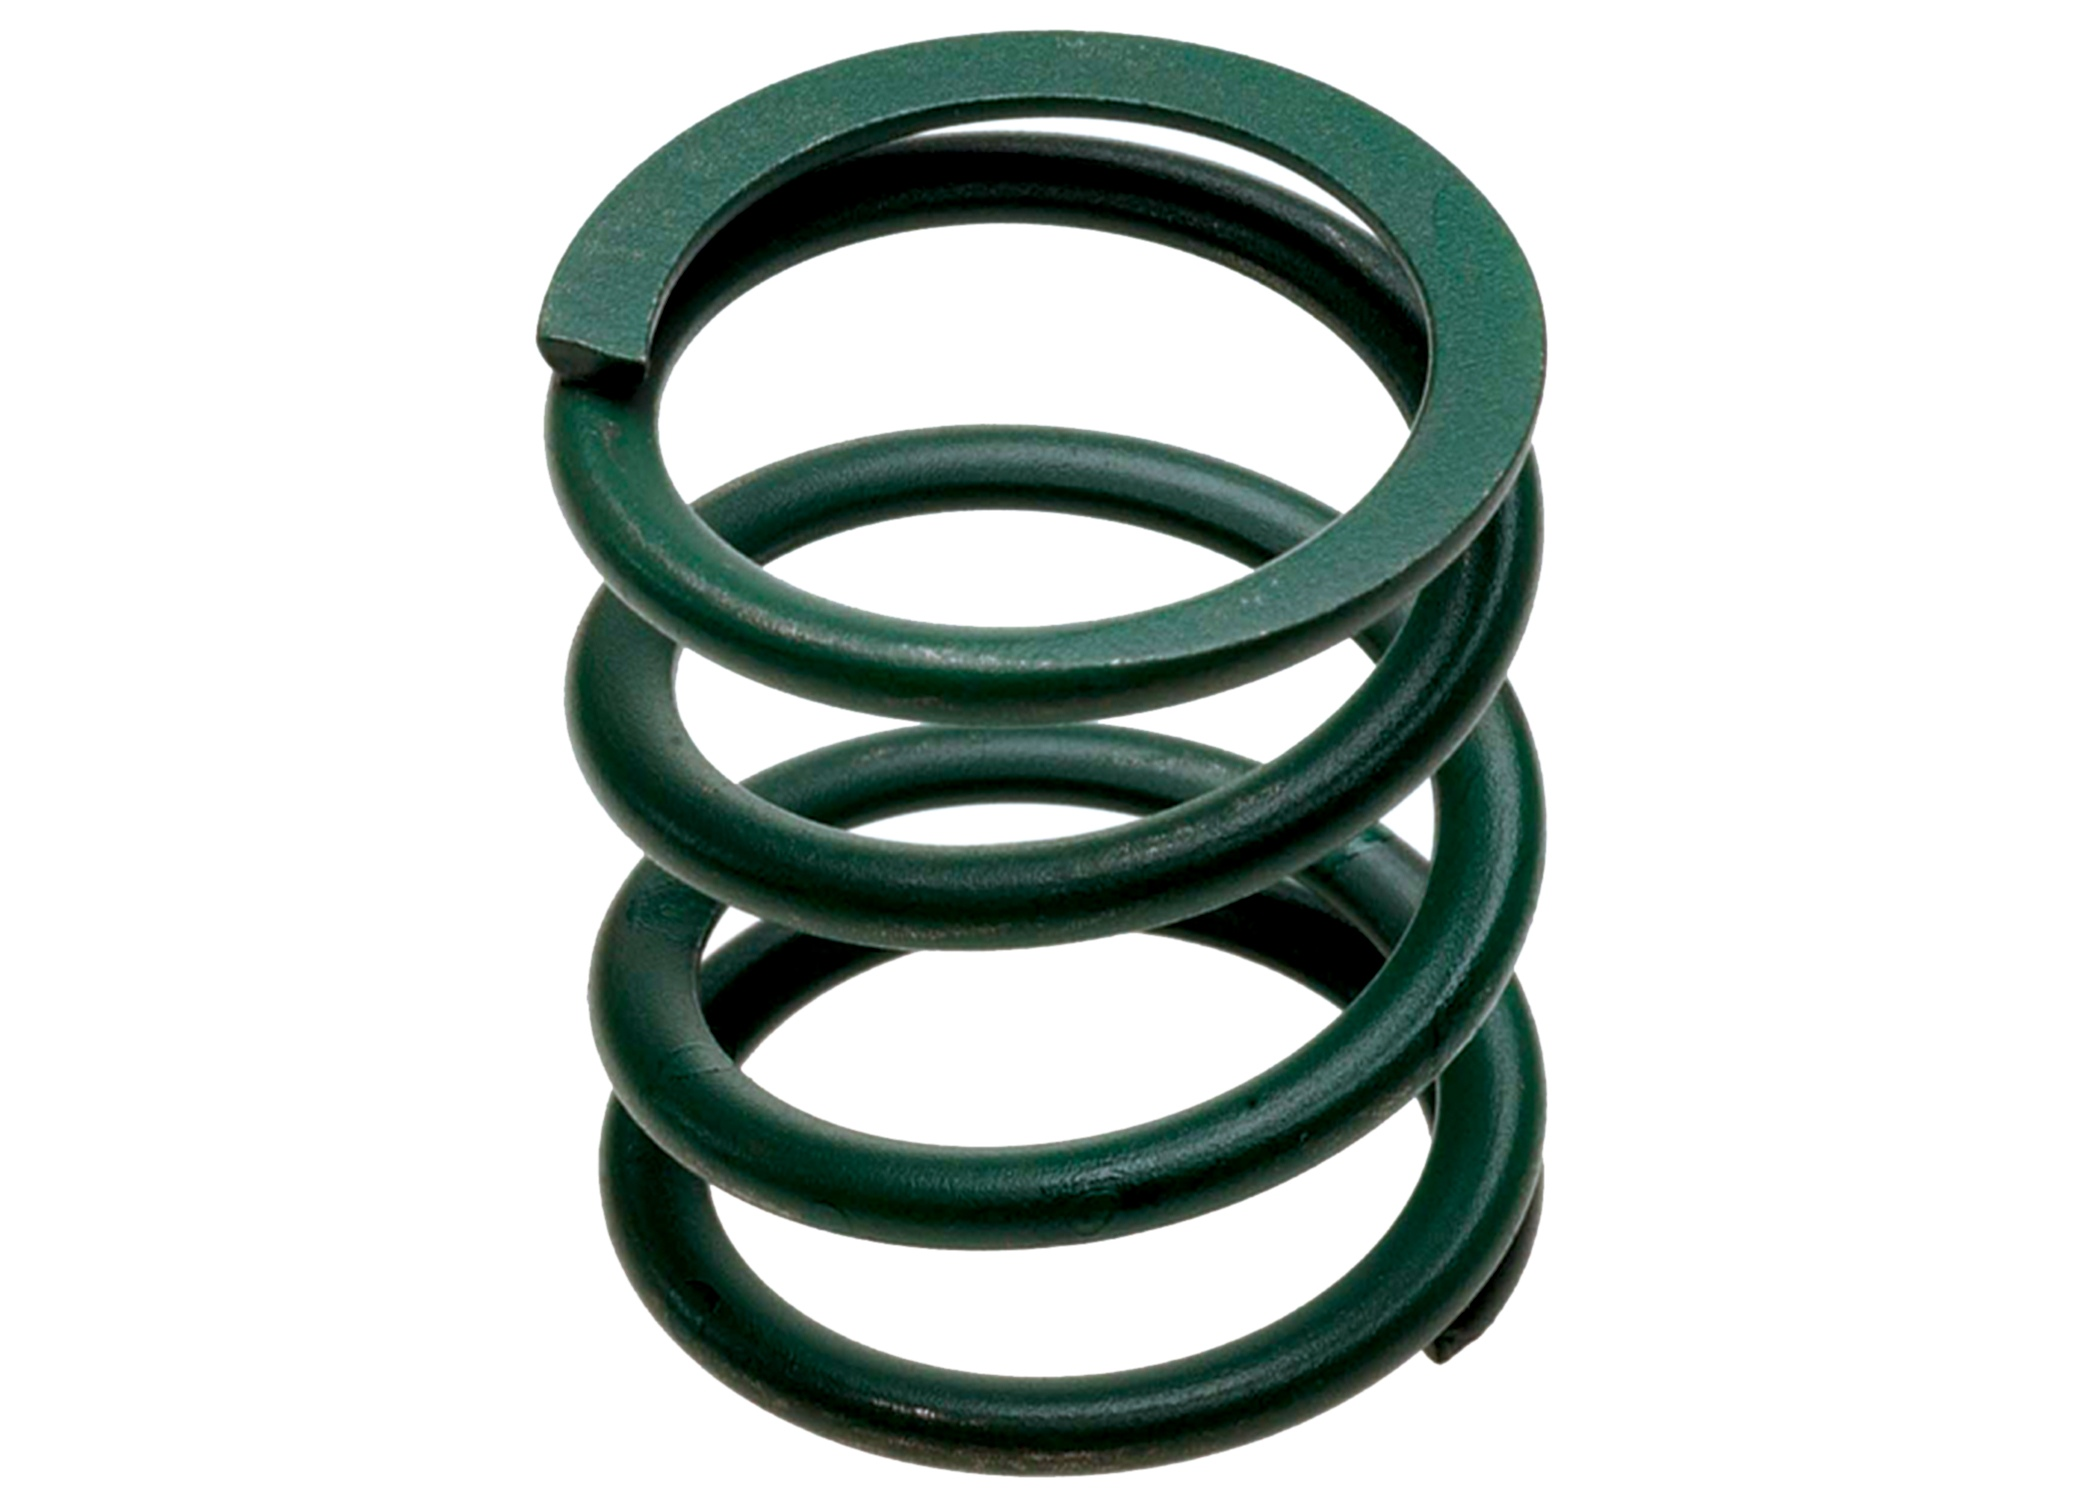 ACDELCO GM ORIGINAL EQUIPMENT - Automatic Transmission Accumulator Outer Spring (1-2, Outer) - DCB 24219942